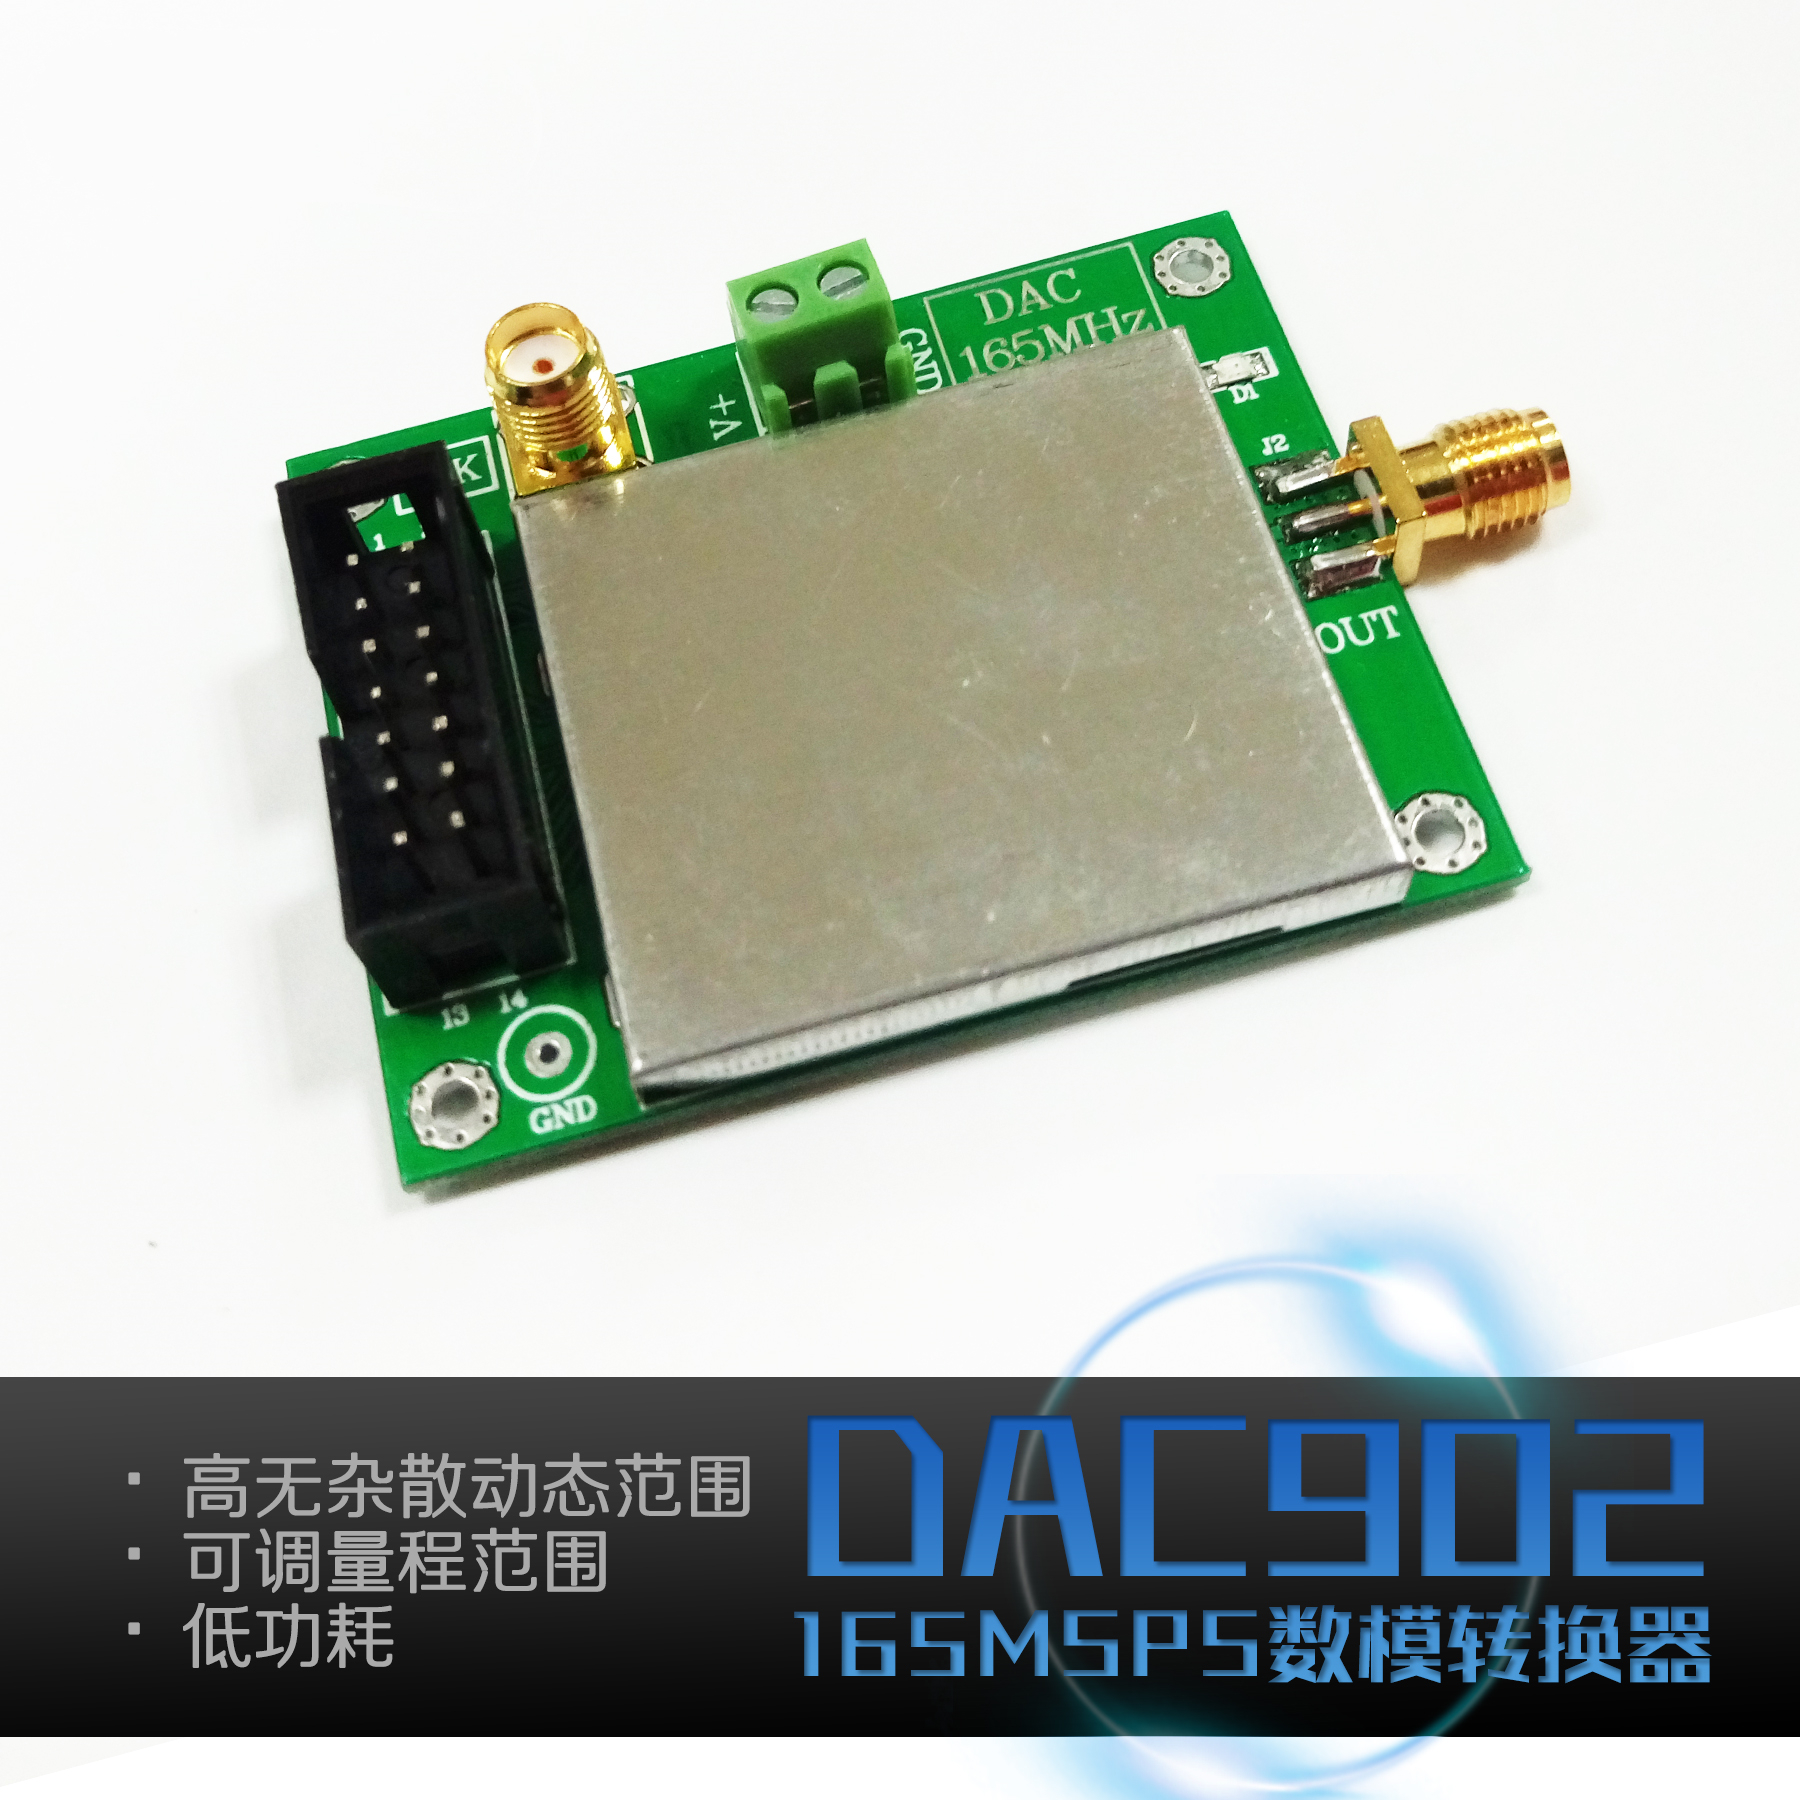 Dawupine High Speed DA Digital To Analog Conversion Module DAC902E High SFDR 12 Bit 165MSPS